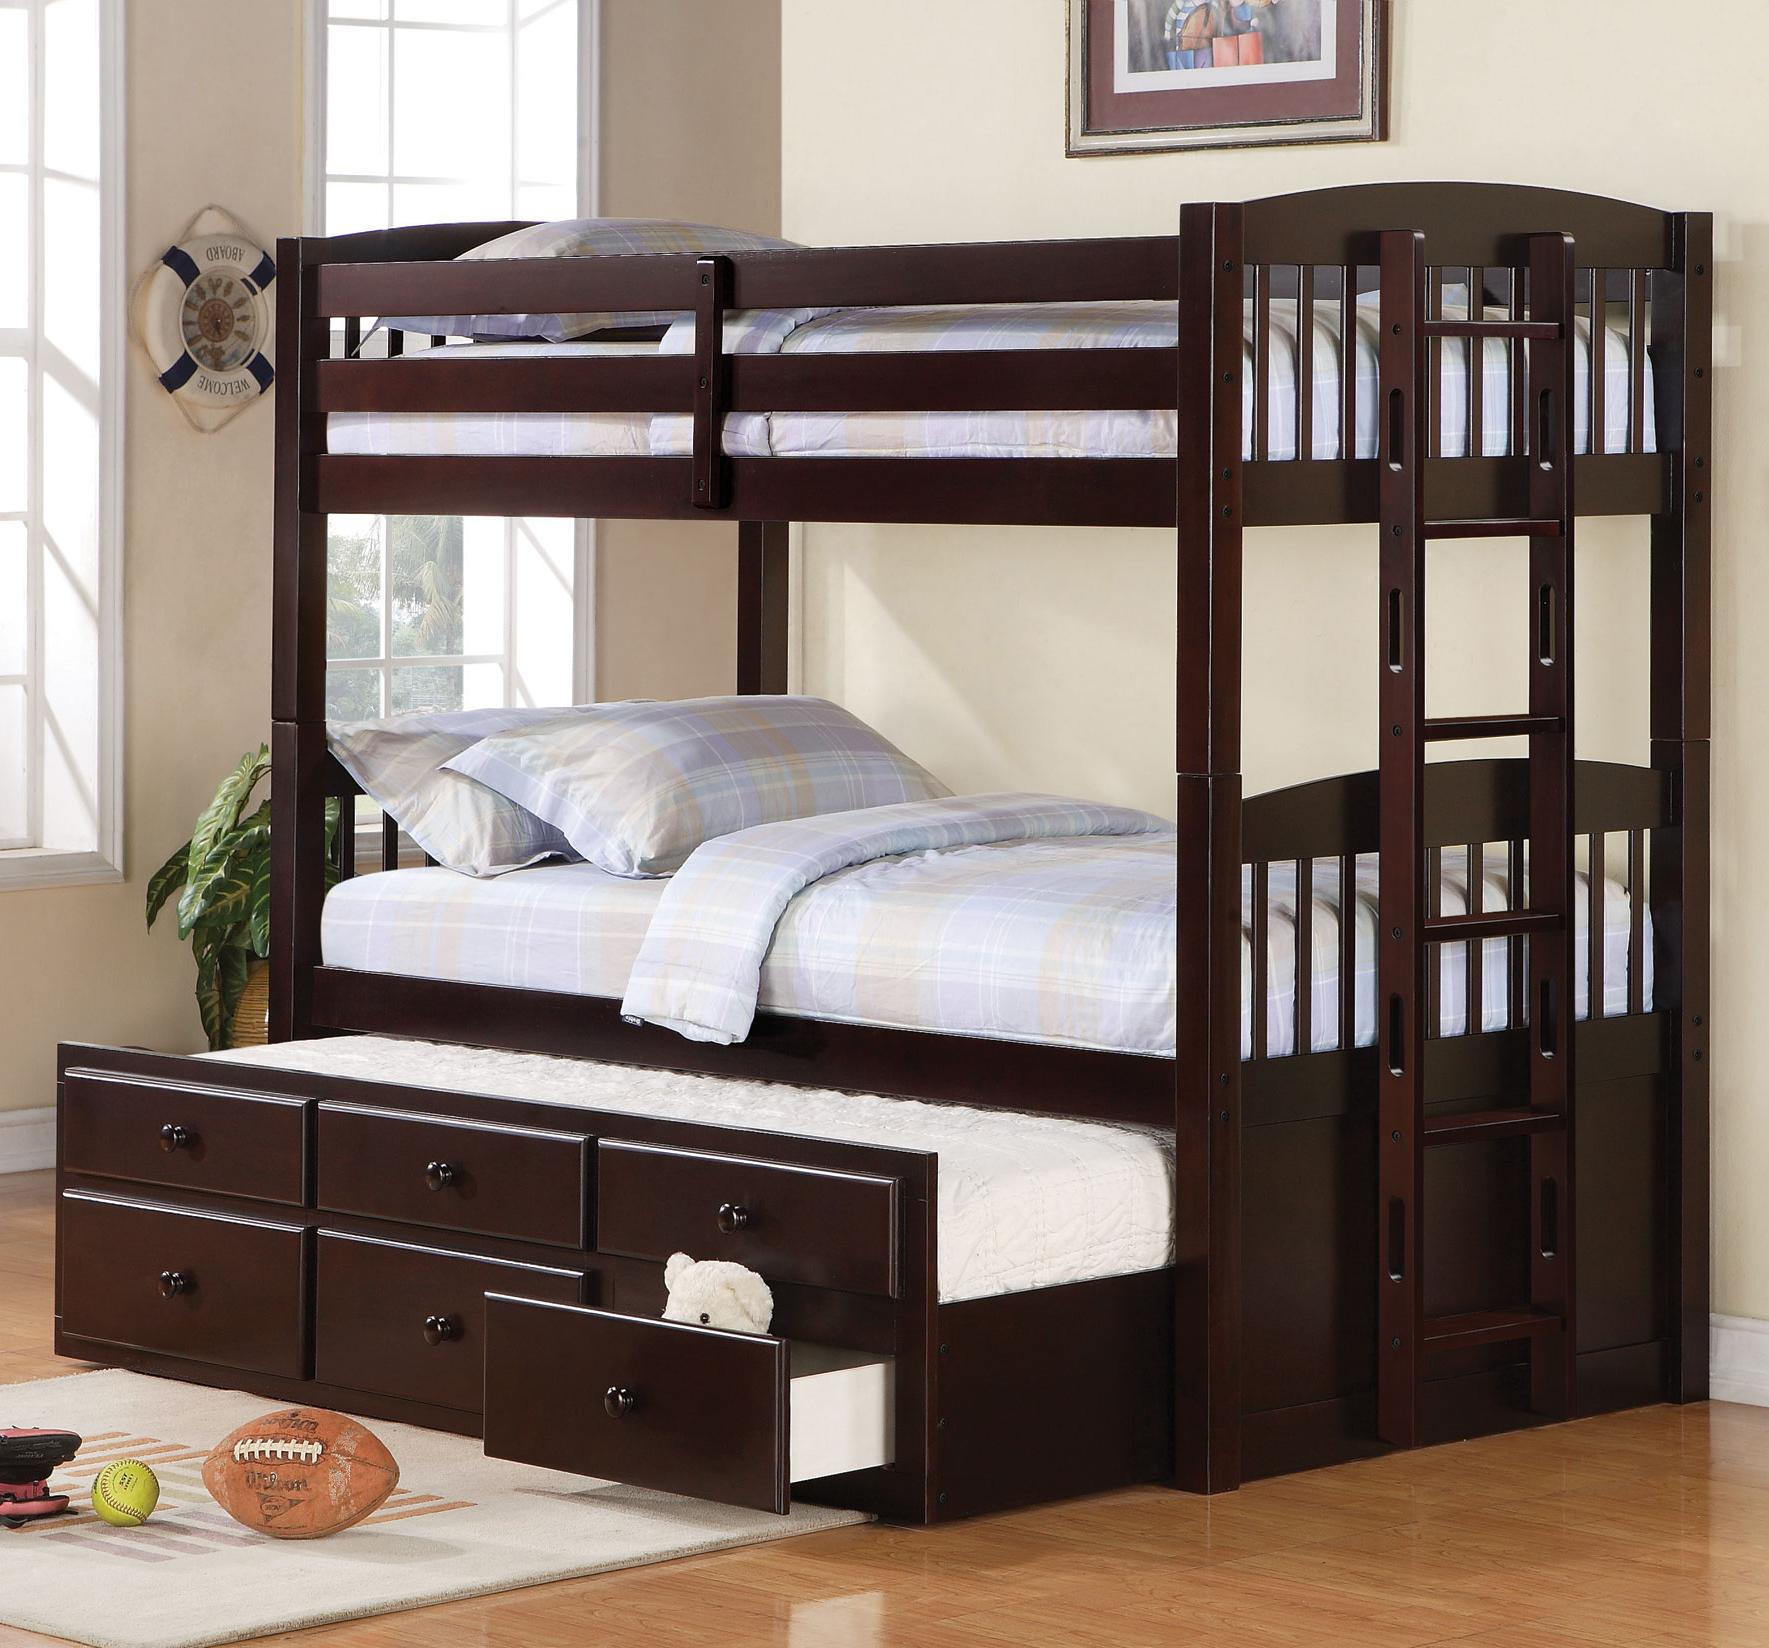 Logan Twin over Twin Bunk Bed with Trundle by Coaster at Prime Brothers Furniture